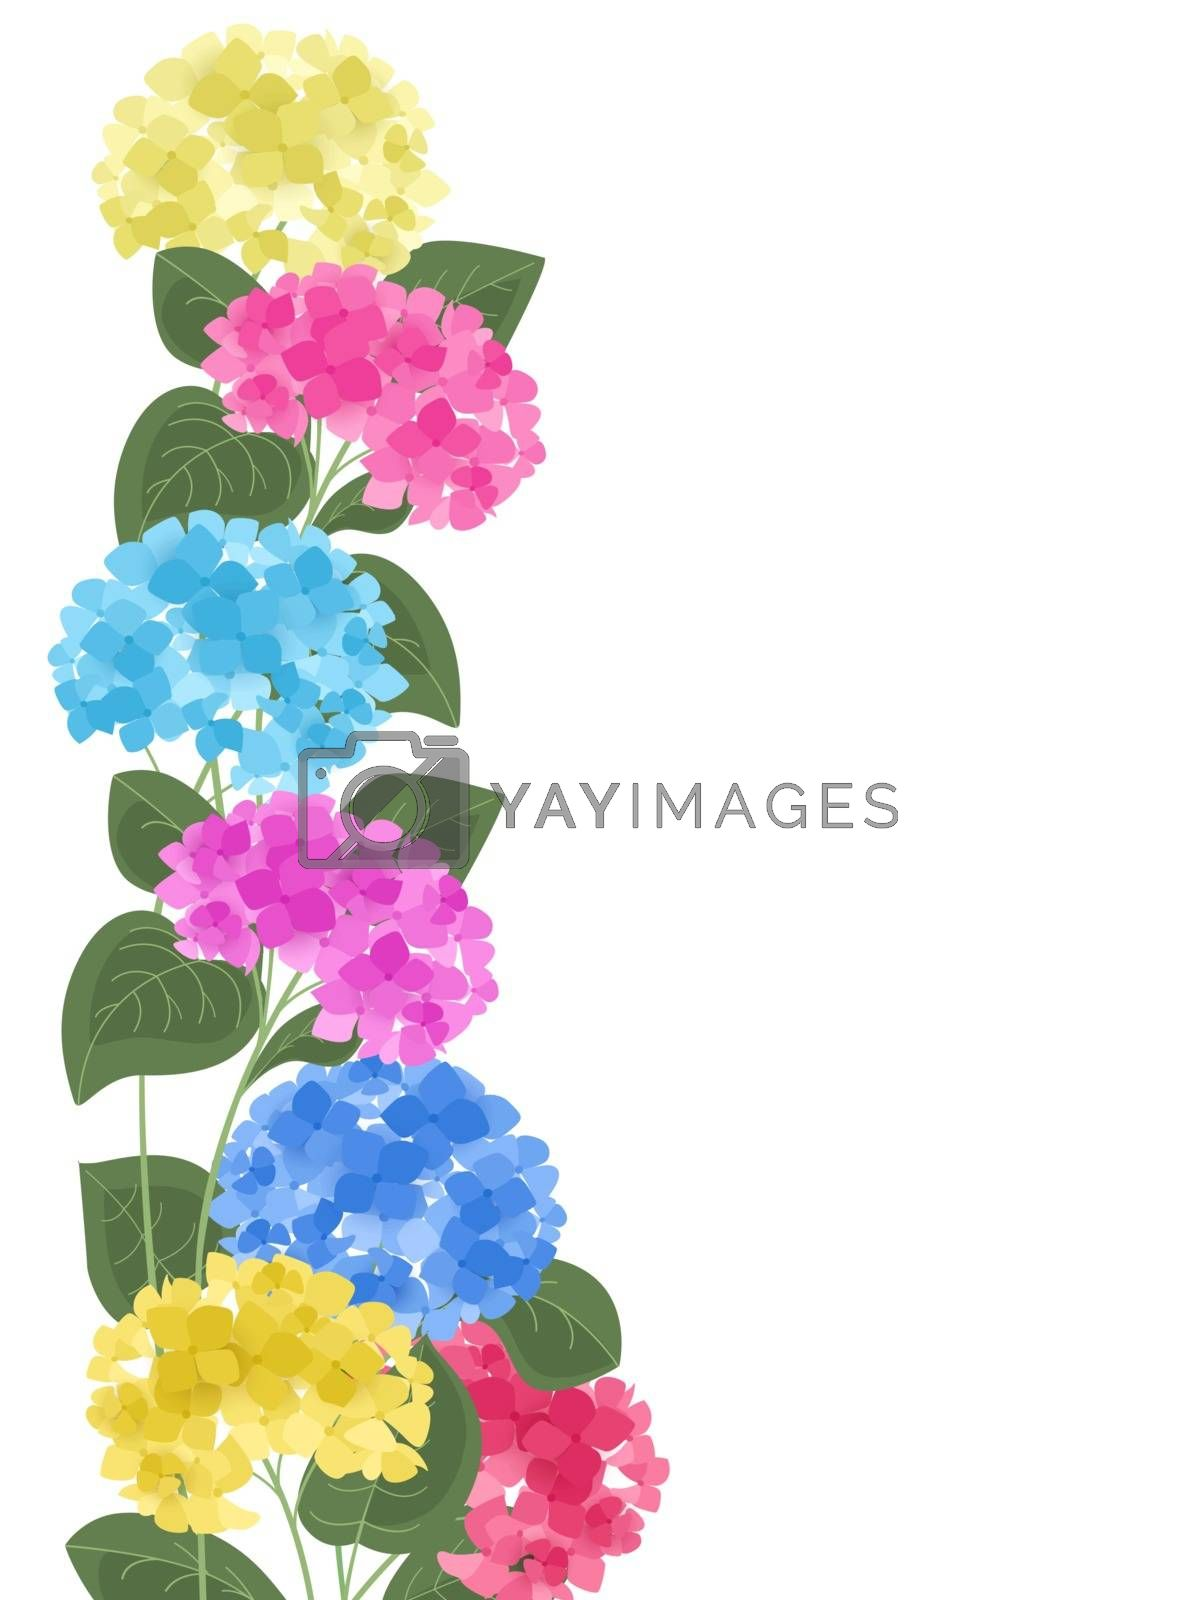 Vector illustration of hydrangea flower. Background with floral decorations